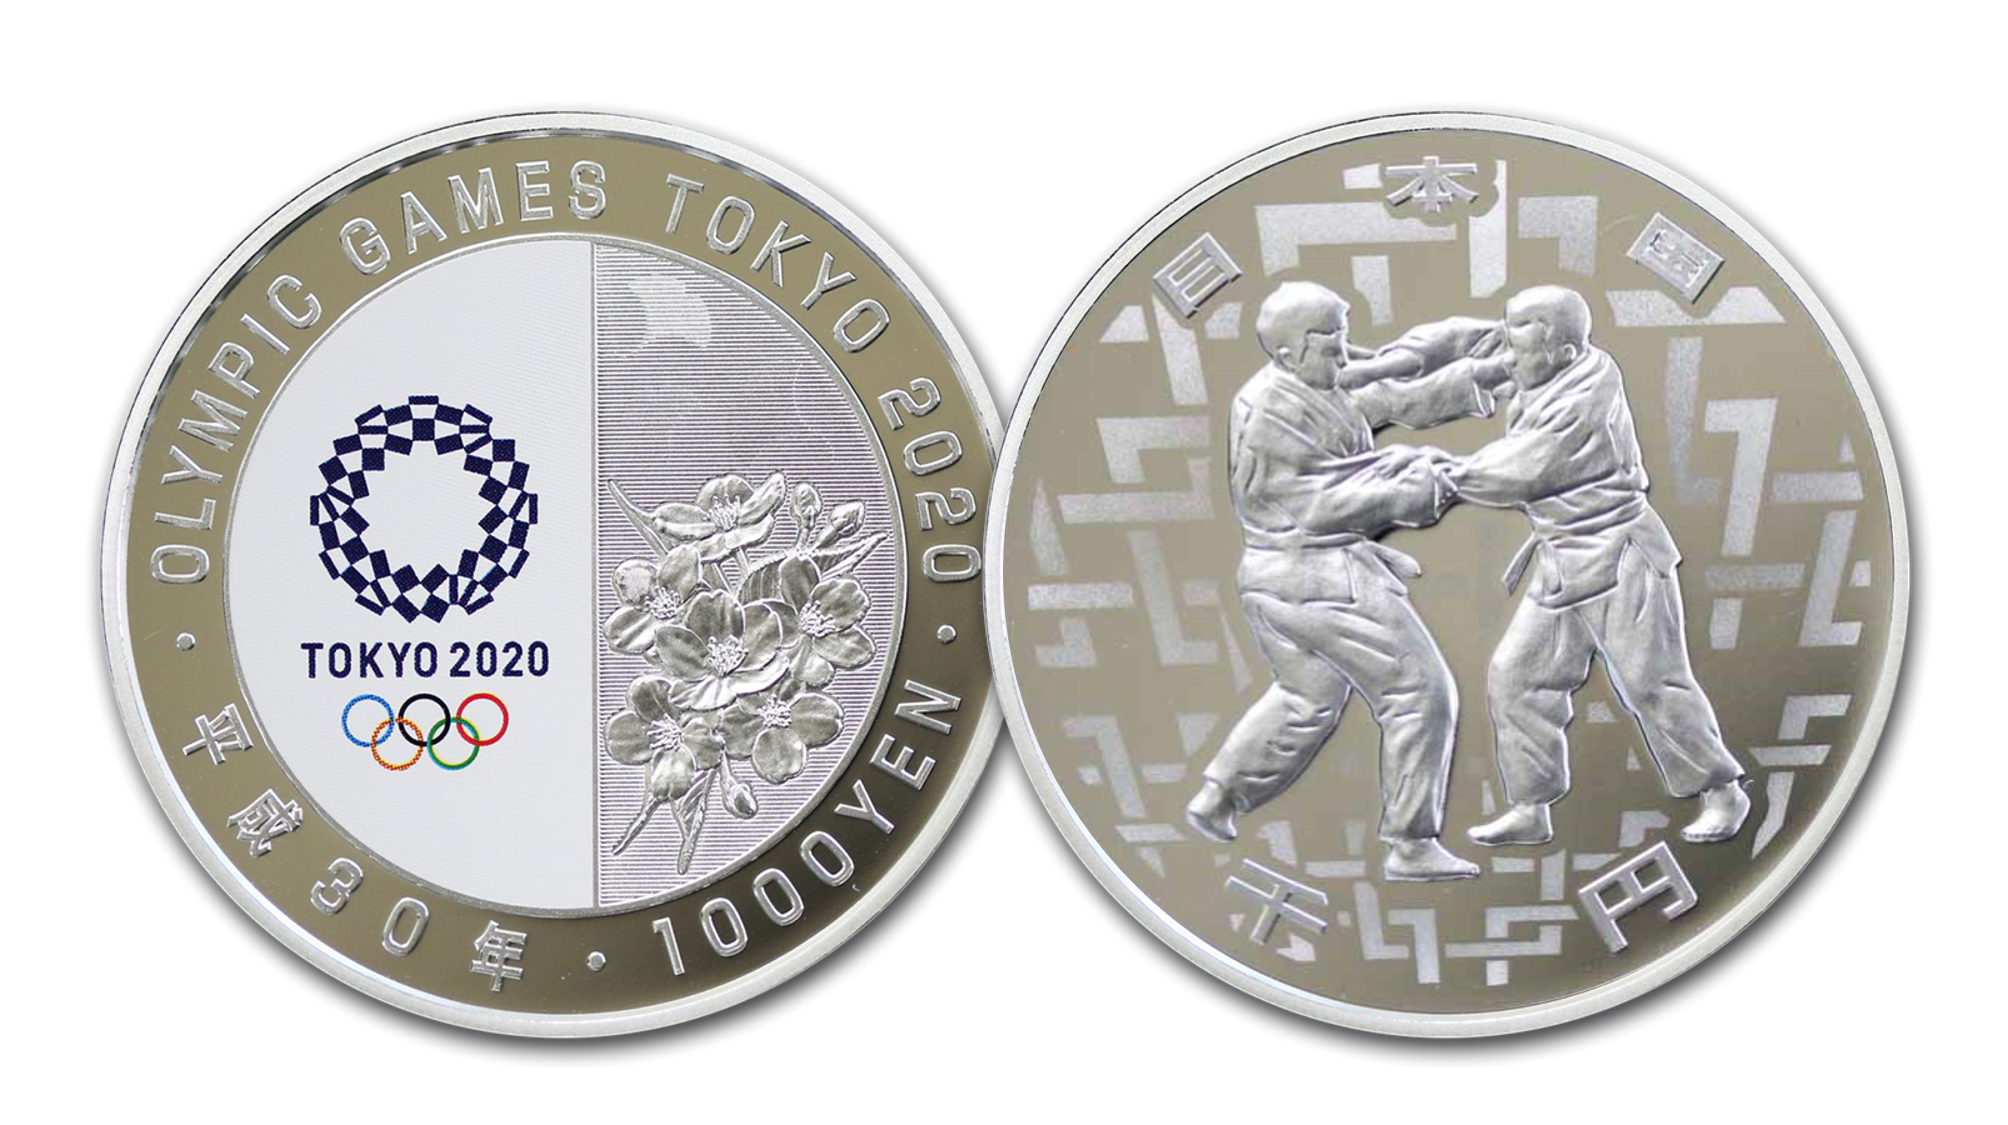 In celebration of this prestigious games, you can become a part of this worldwide event by owning a beautiful 1 oz pure Silver coin, officially issued by the Japan Mint for the 2020 Tokyo Games.